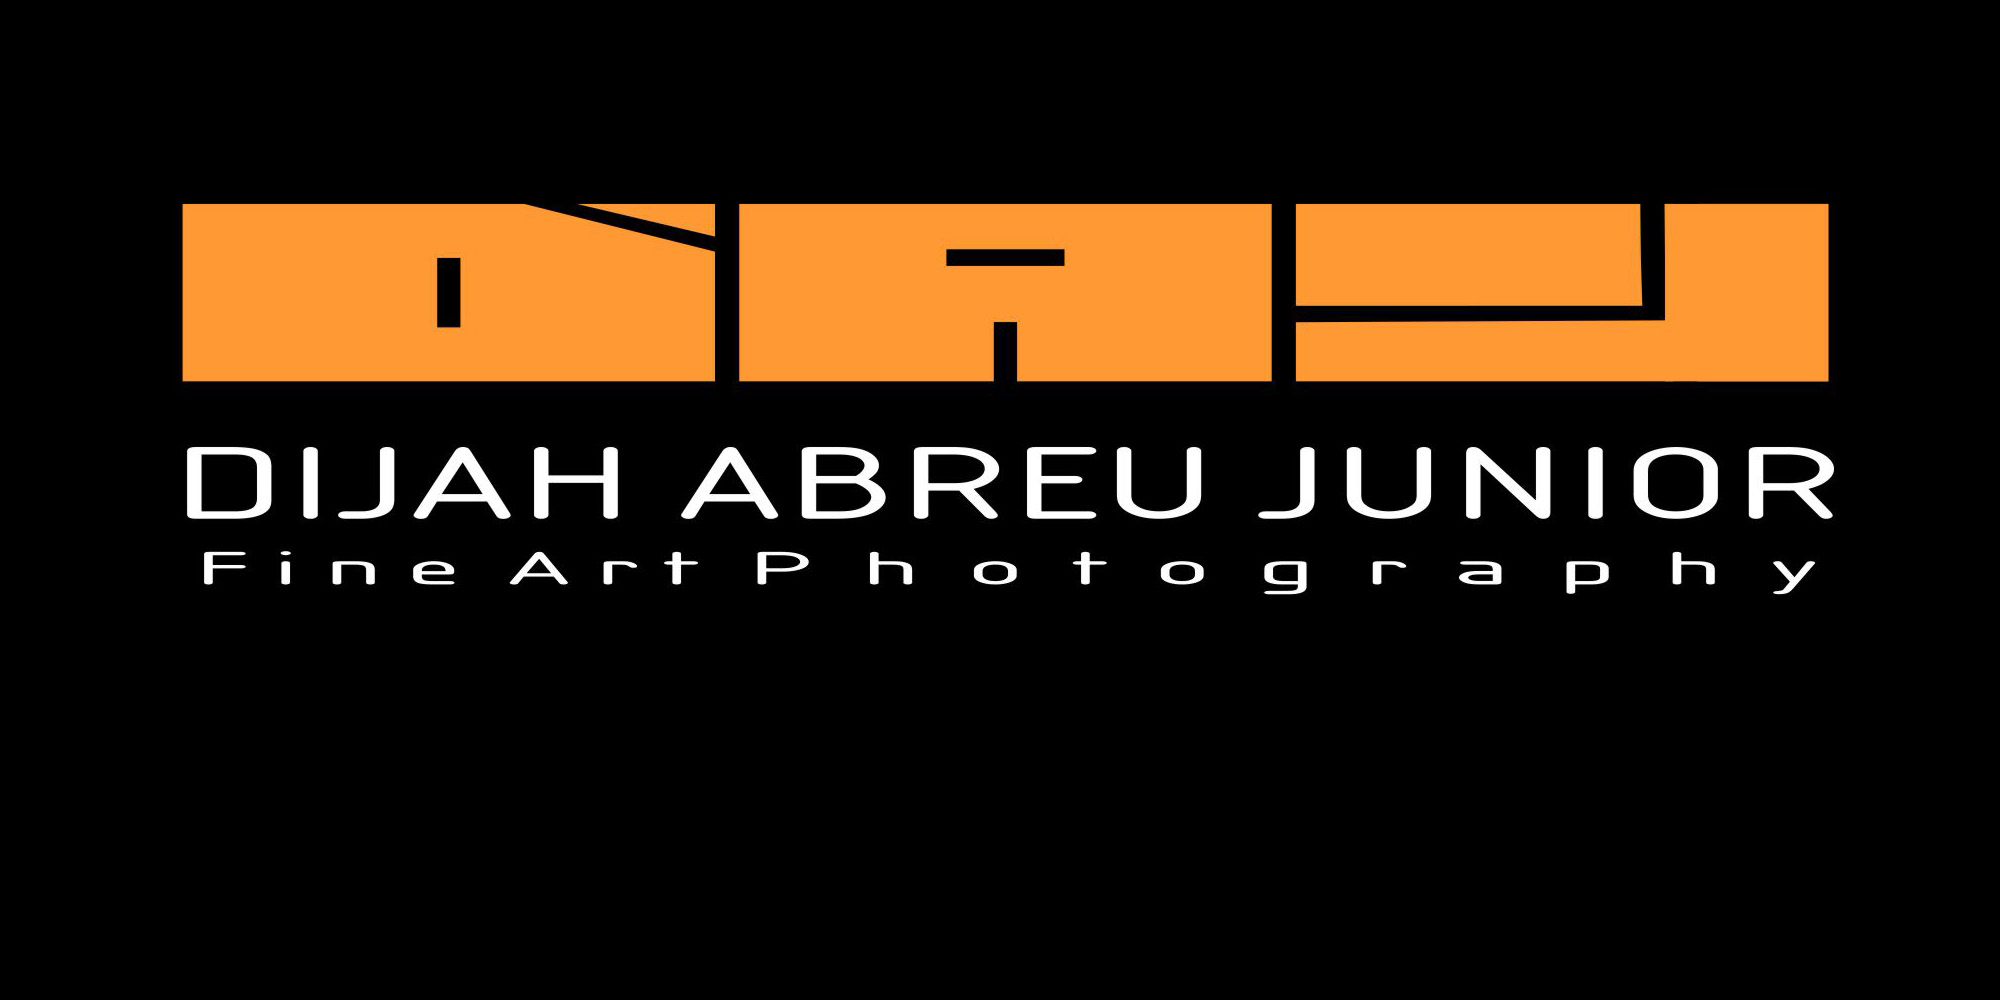 Dijah Abreu Junior Signature